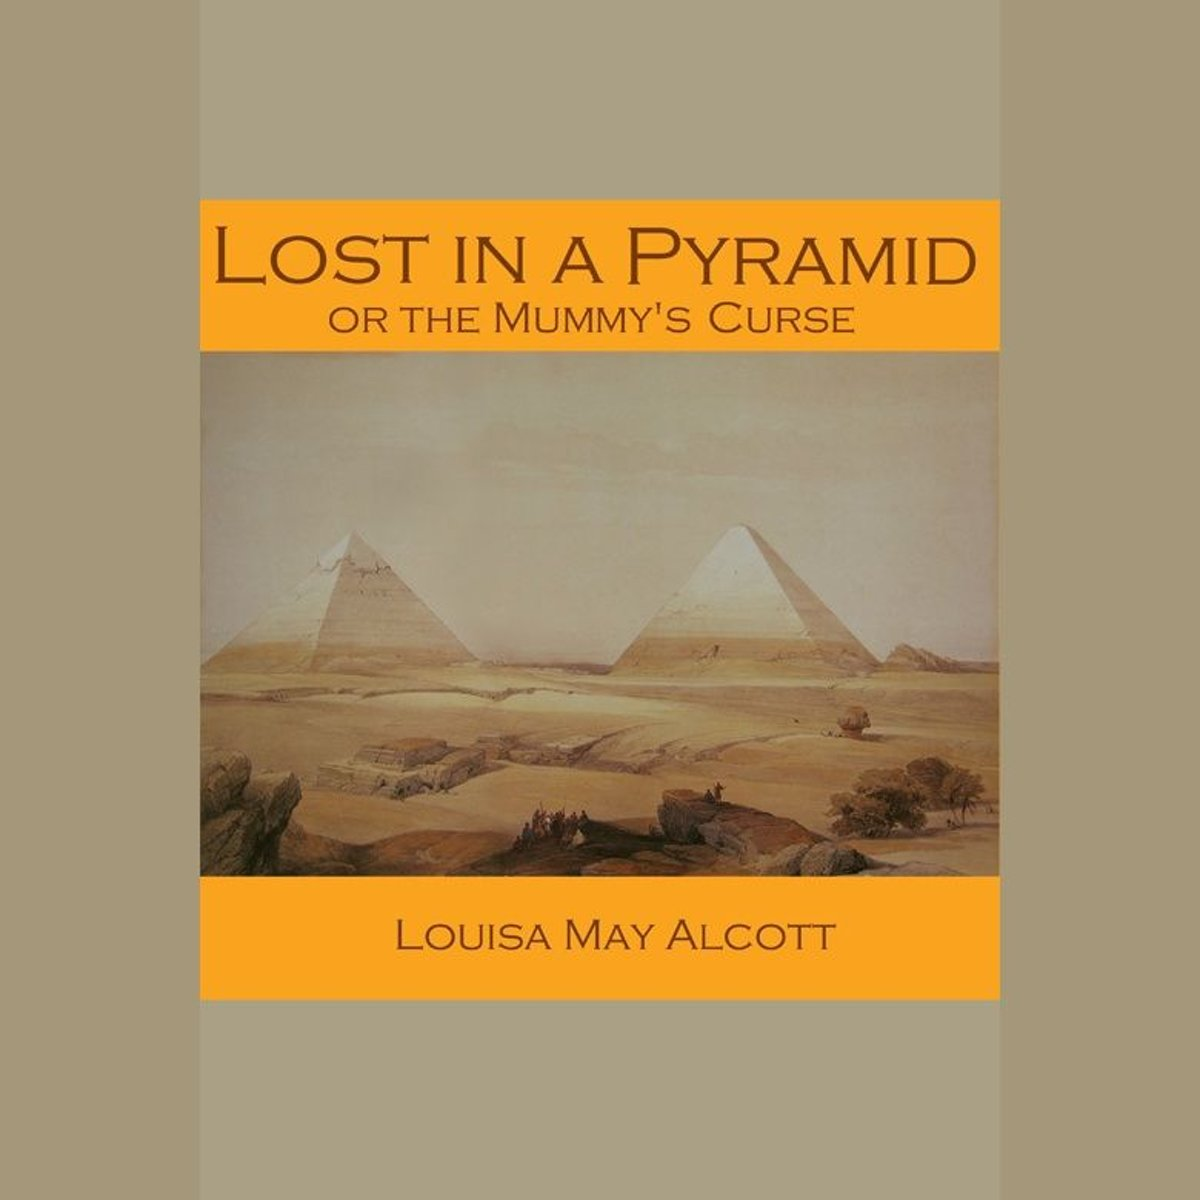 Lost in a Pyramid